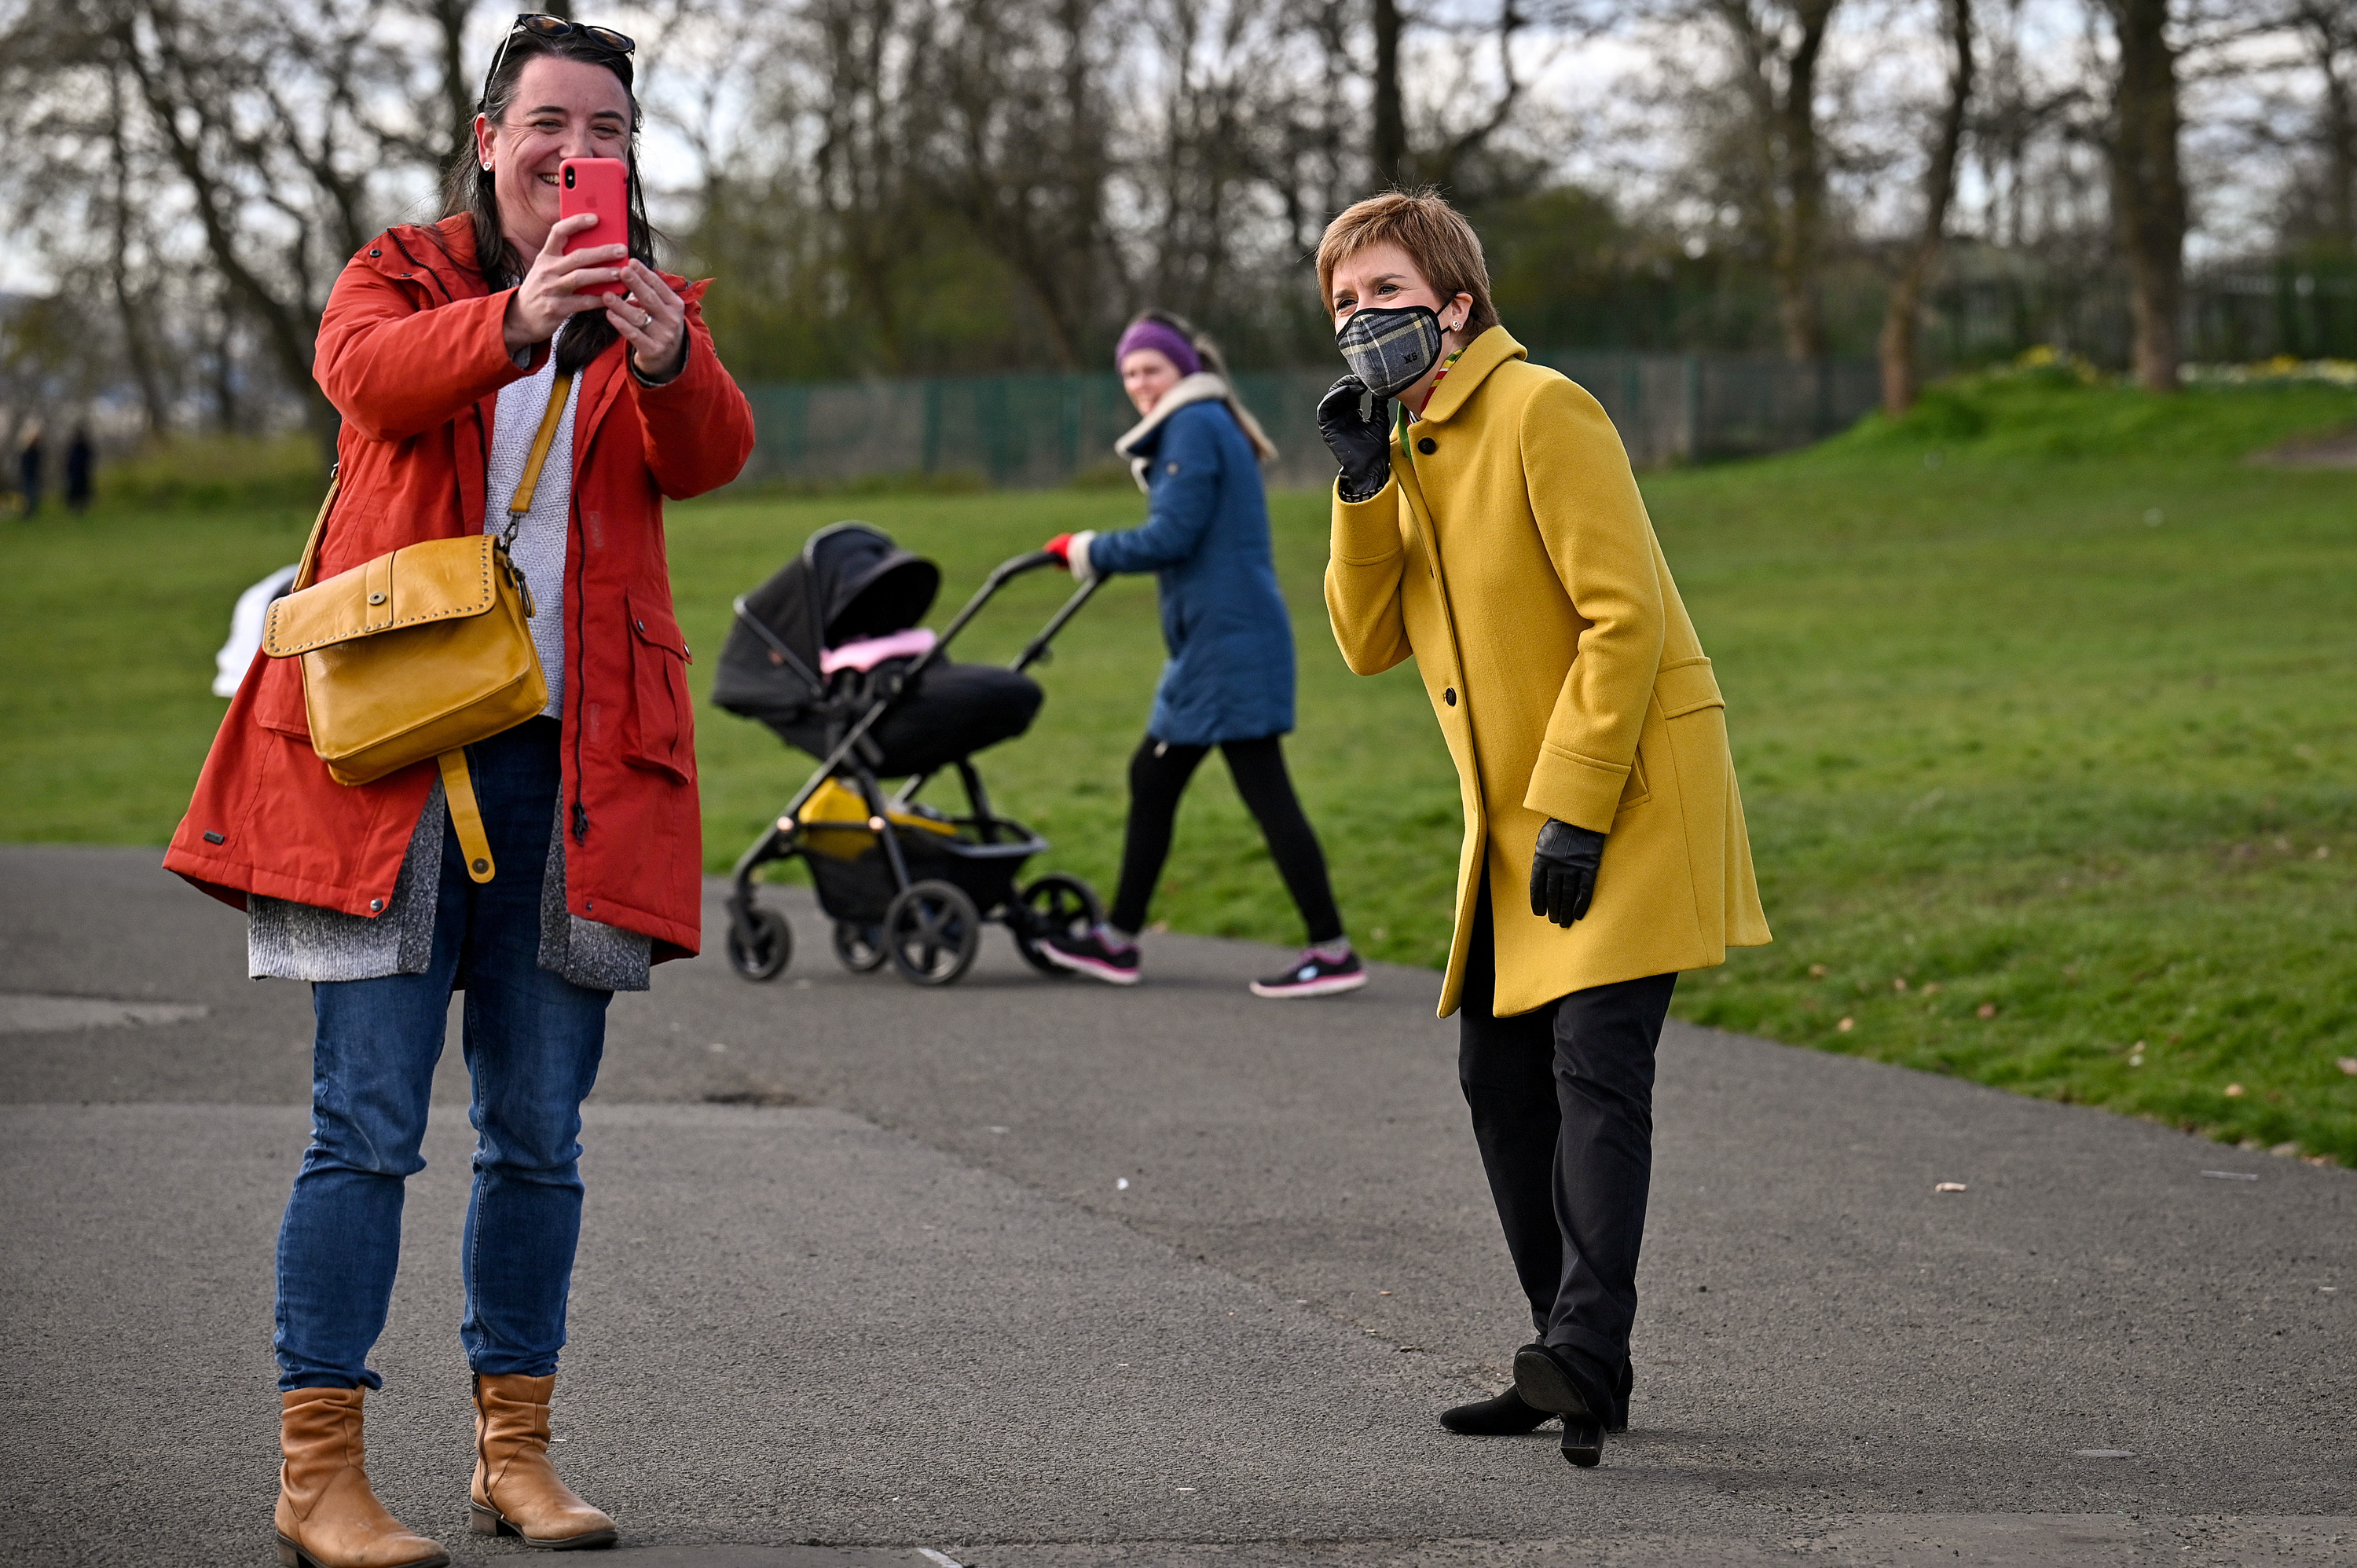 <p>First Minister and leader of the Scottish National Party (SNP), Nicola Sturgeon, in Queen's Park, Glasgow, during campaigning for the Scottish Parliamentary election. Picture date: Wednesday April 7, 2021.</p>